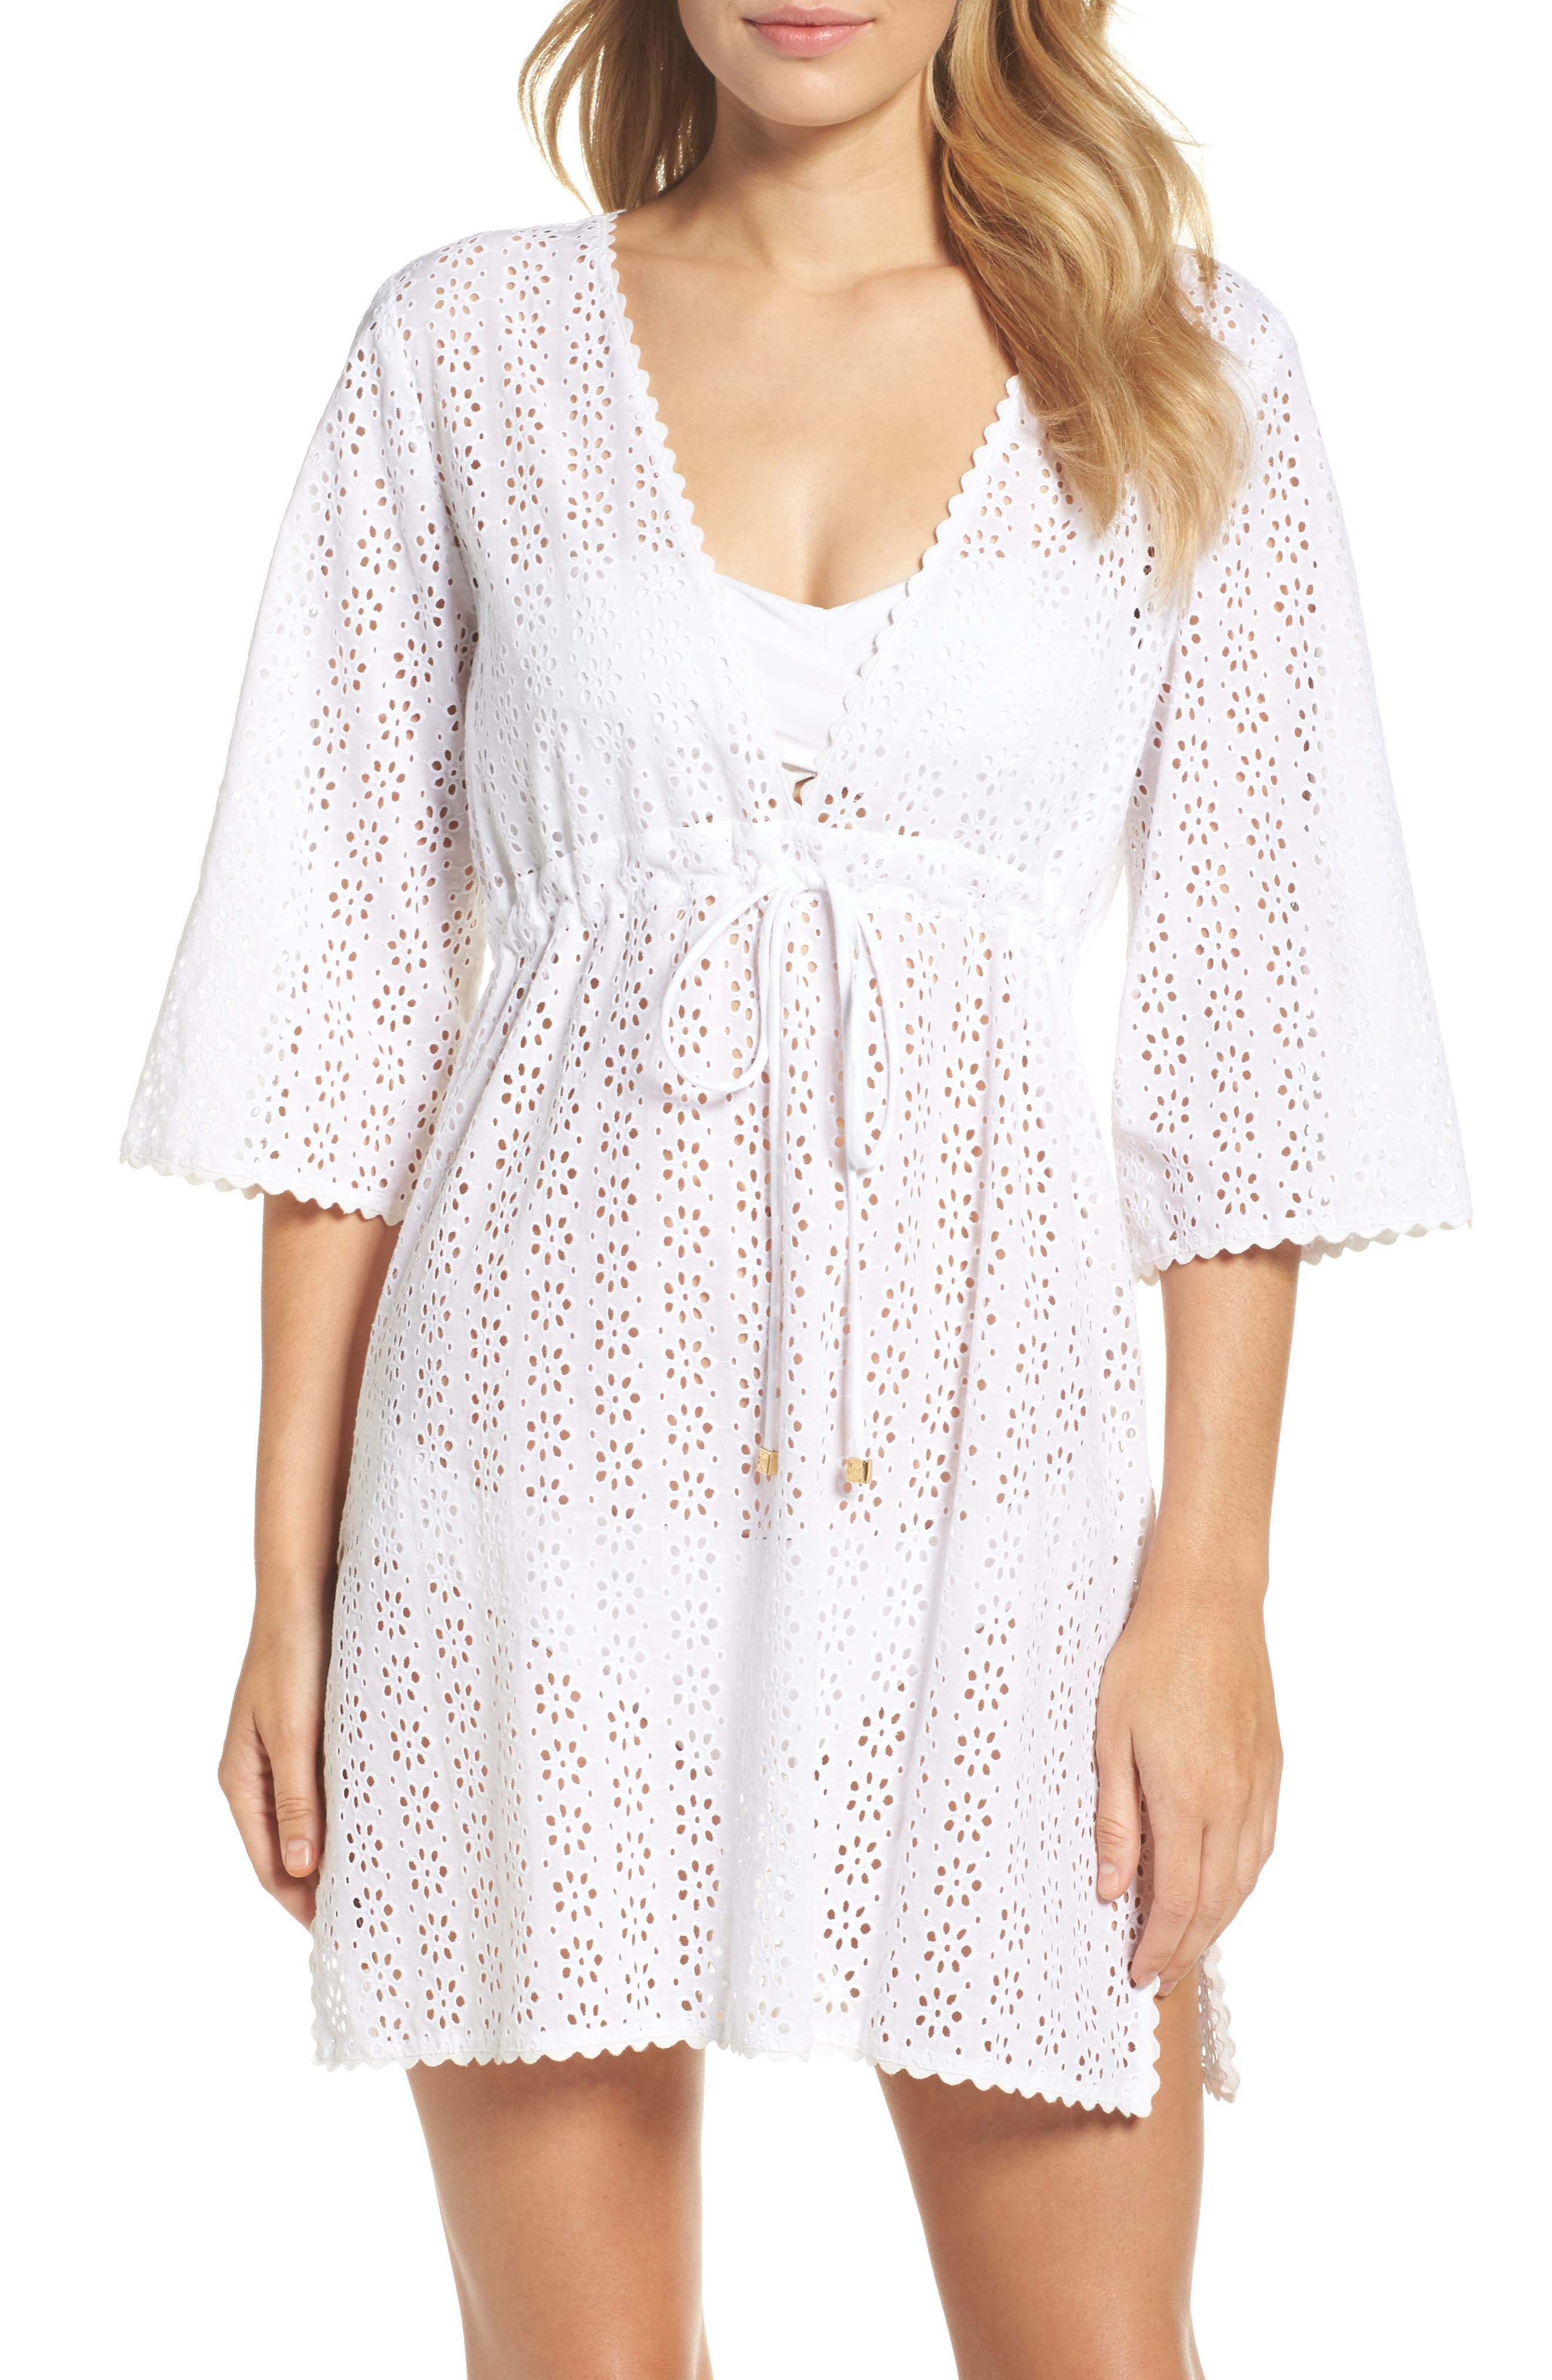 Broderie Anglais Cover-Up Dress,                         Main,                         color, White